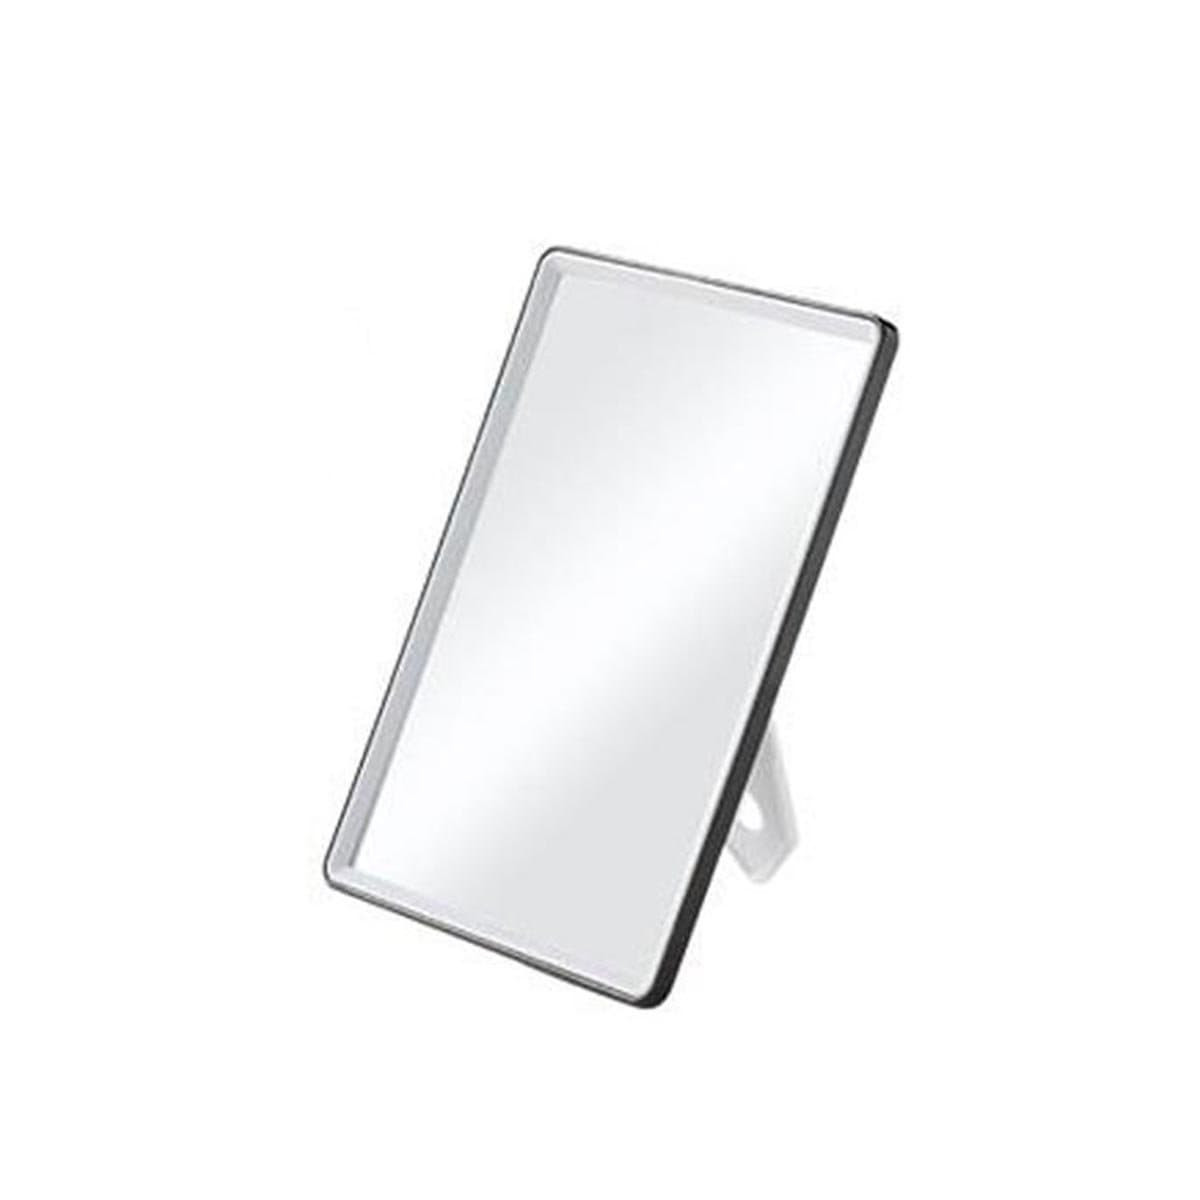 Japanese Multiple Use Glass Mirror